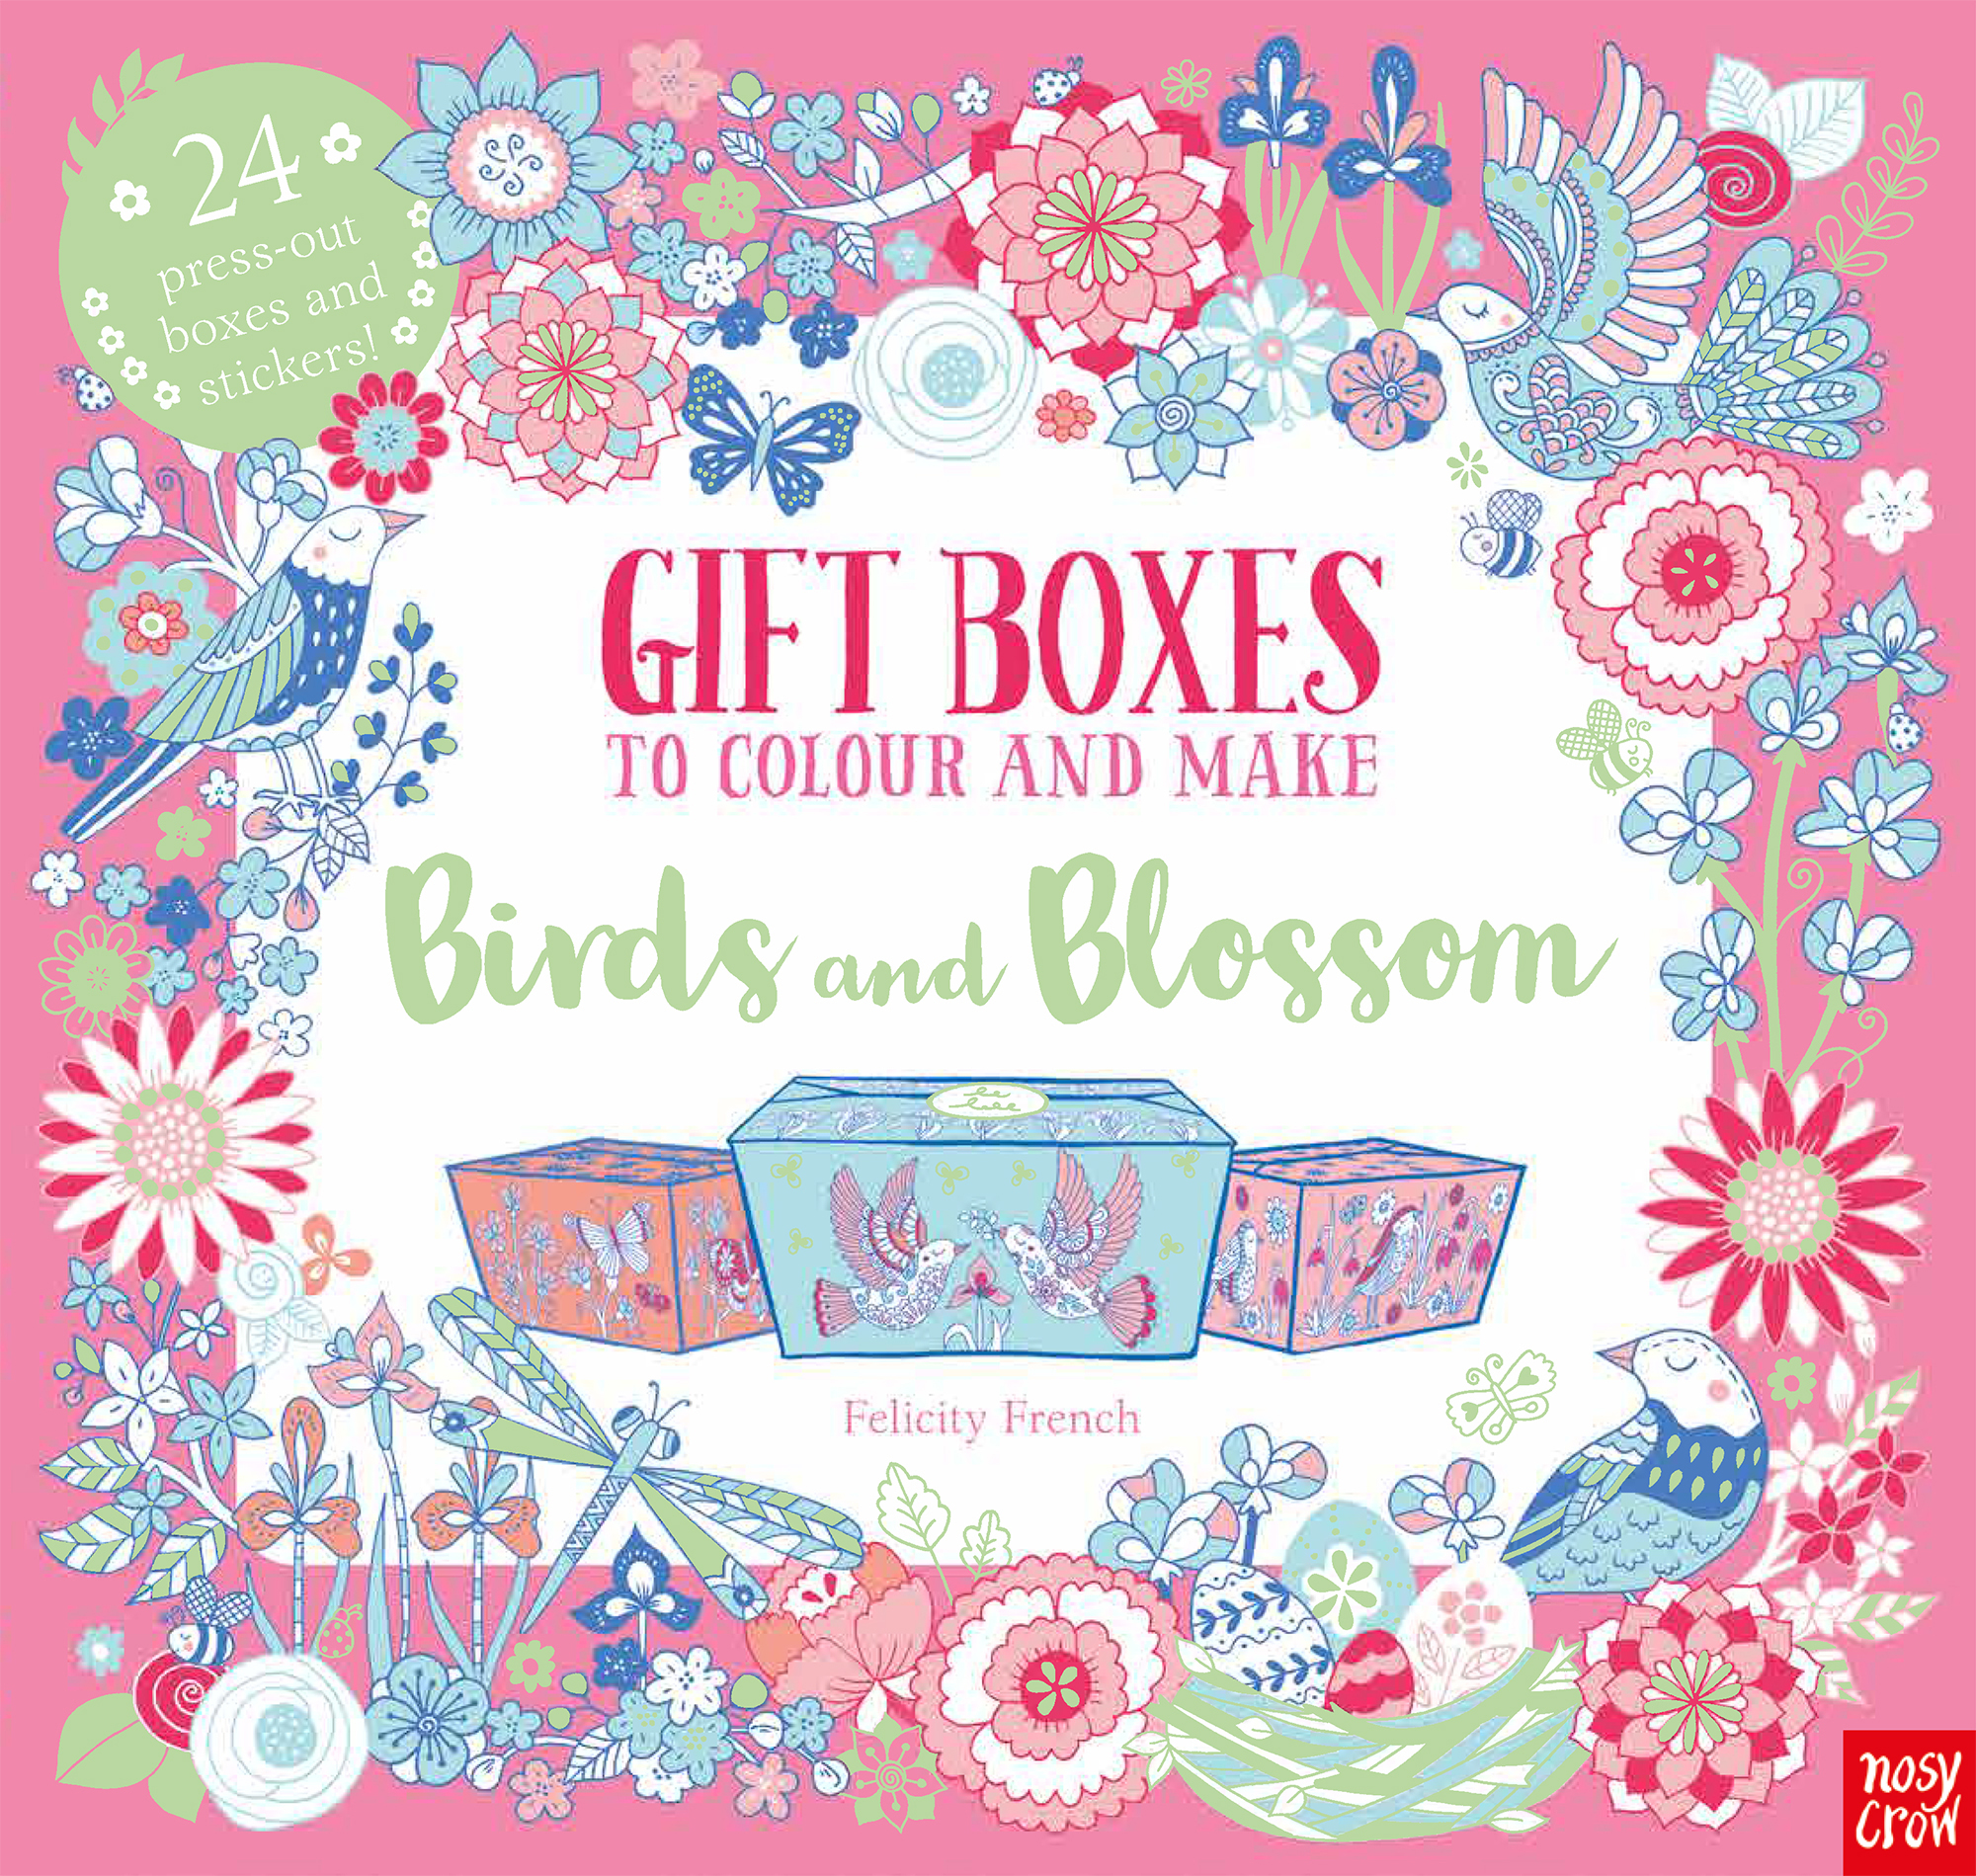 The Colouring Book of Beautiful Boxes: Birds and Blossom